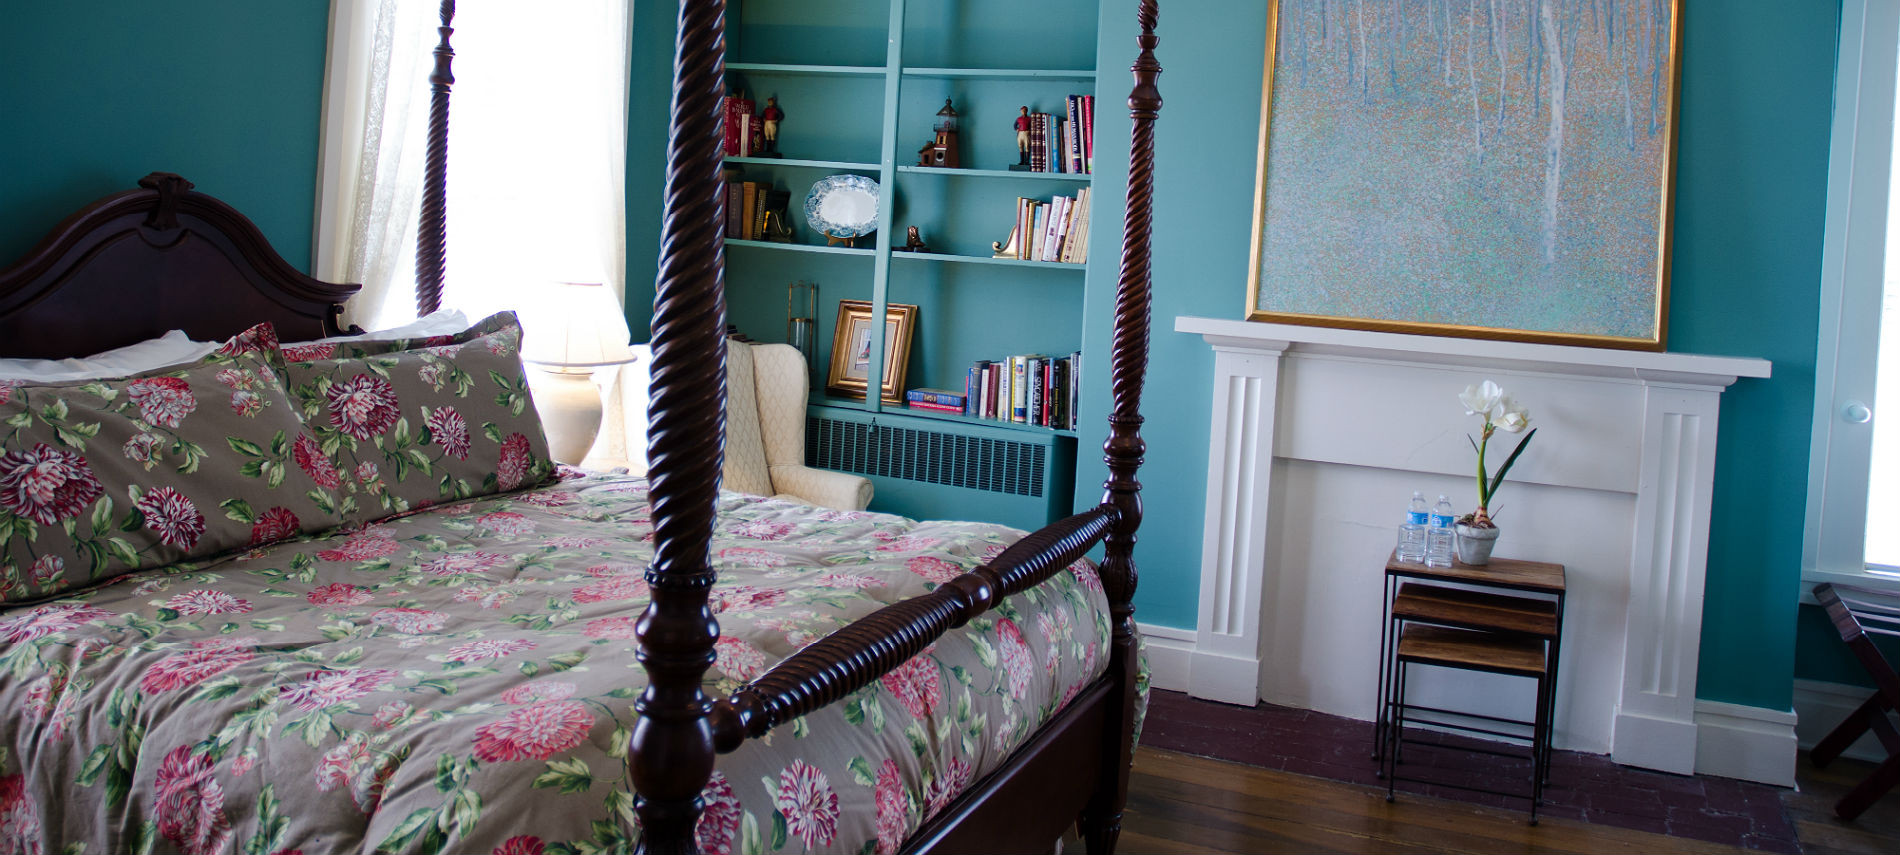 Guestroom with teal walls, white trim and curtains, built-in bookcase and bed with green and pink floral bedding